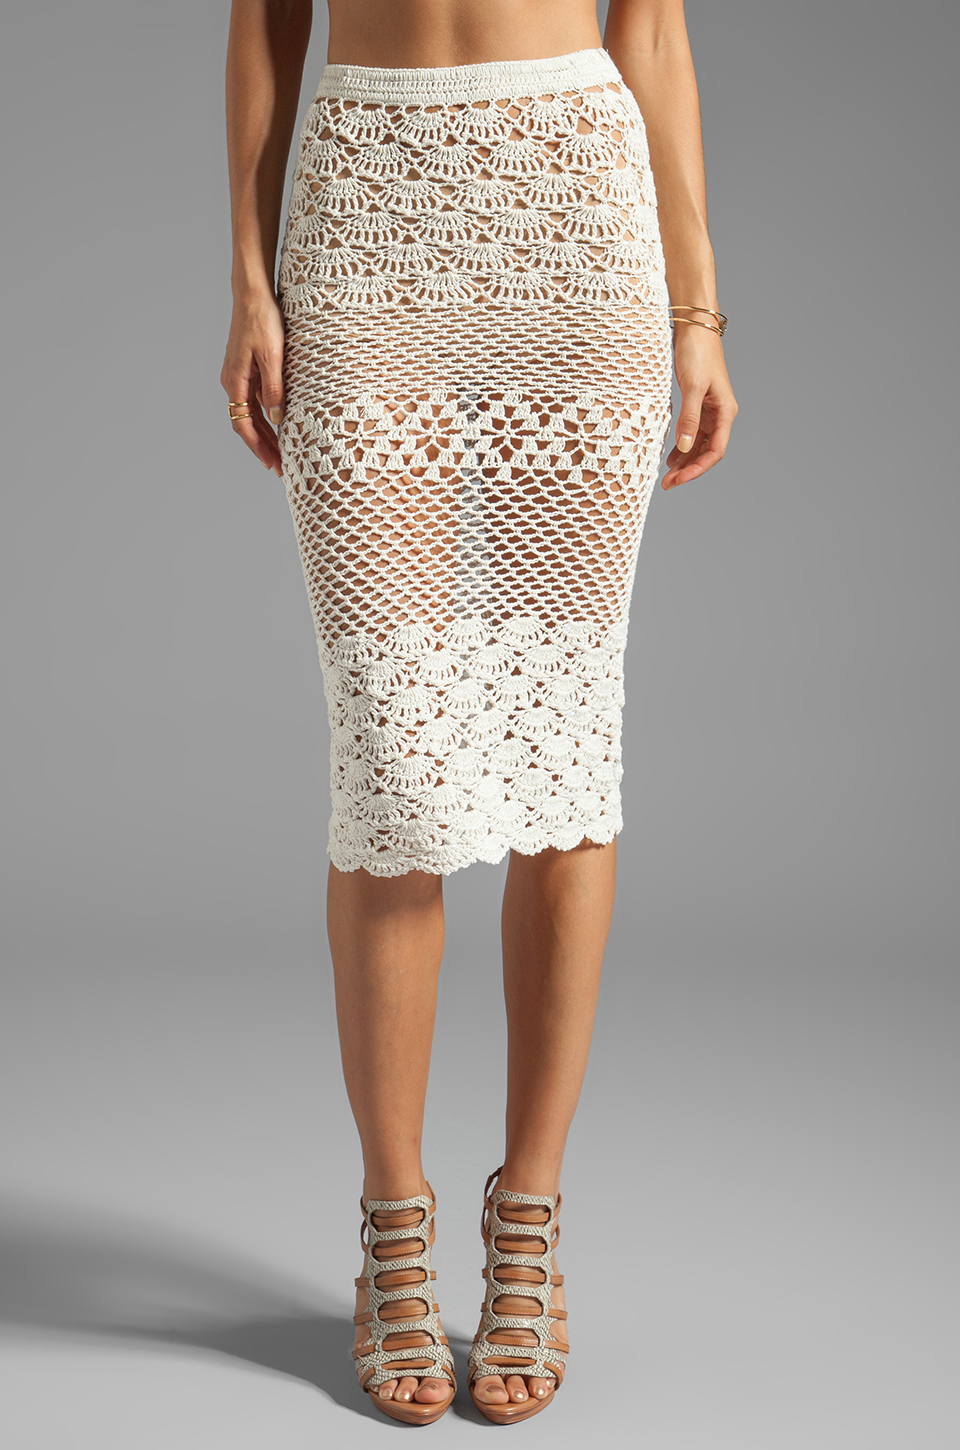 Spell & The Gypsy Collective Coconut Crochet Skirt in Off White | REVOLVE